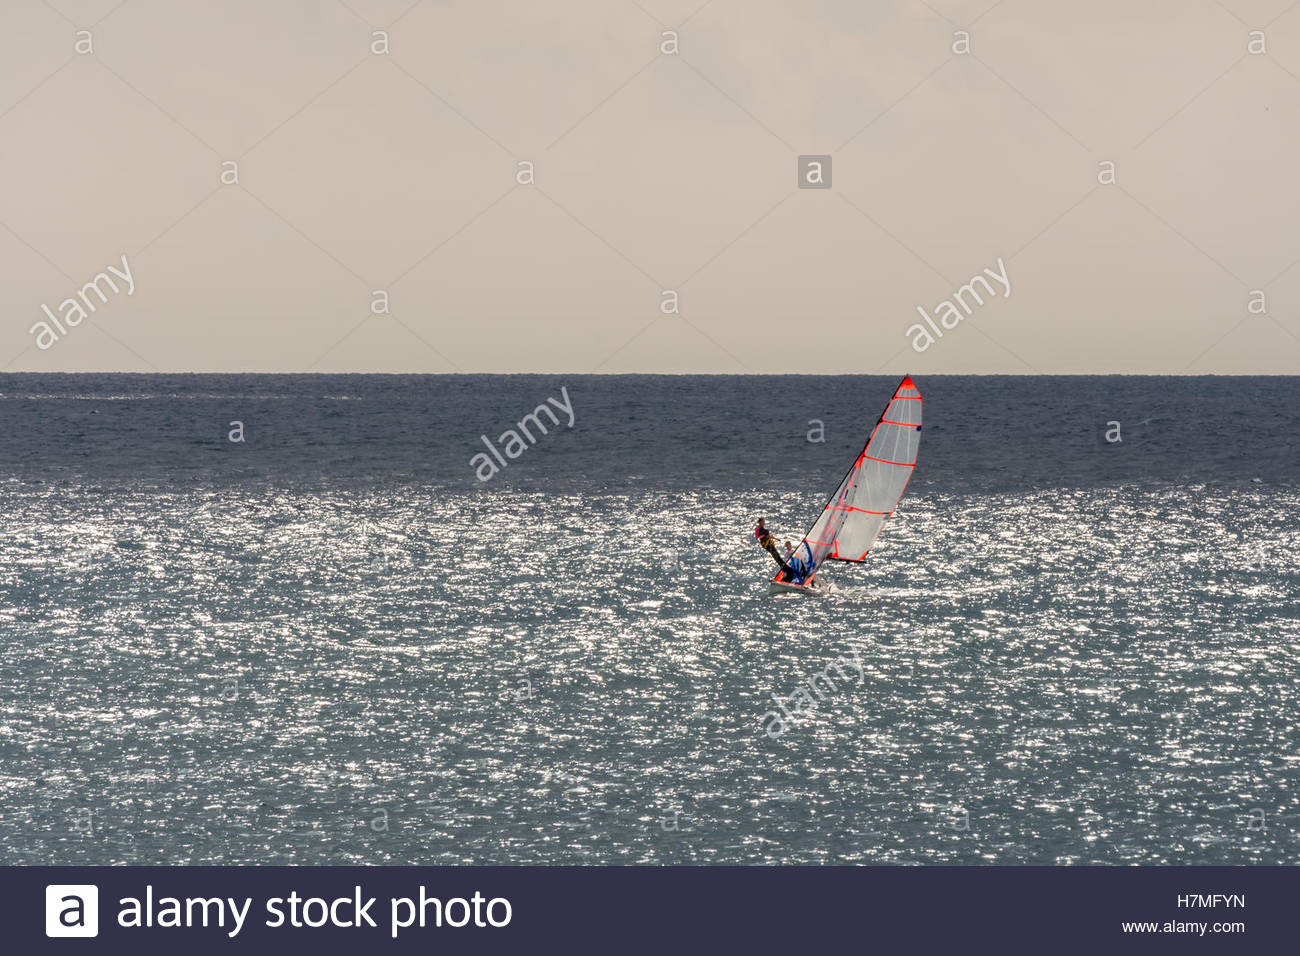 Cloudy and gray sky Mediterranean sea day for sailing. - Stock Image